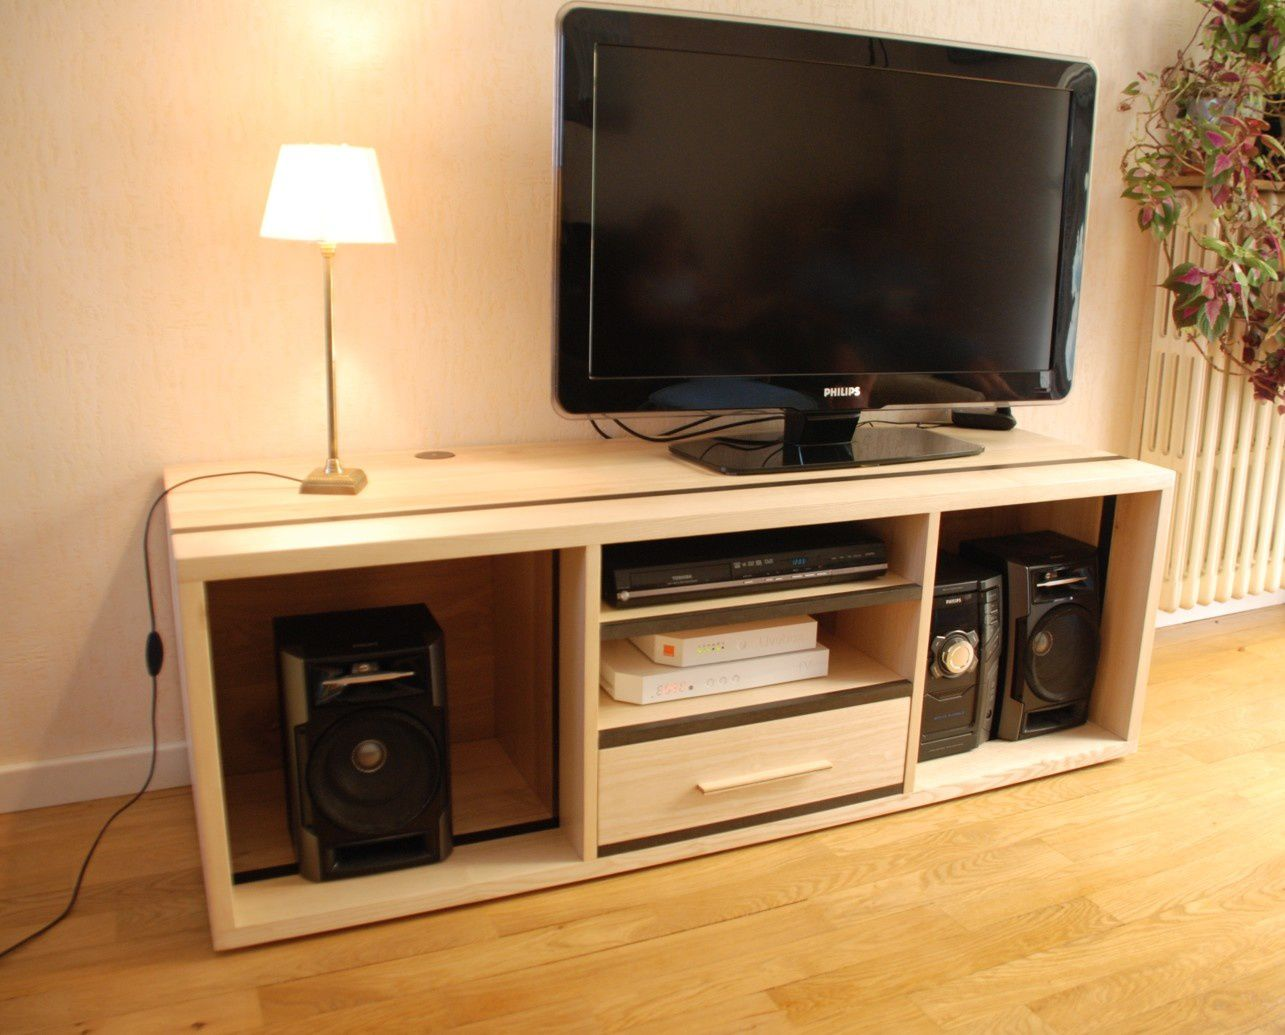 Album meuble tv hifi contemporain atelier pourquoi pas for Meuble tv hifi design